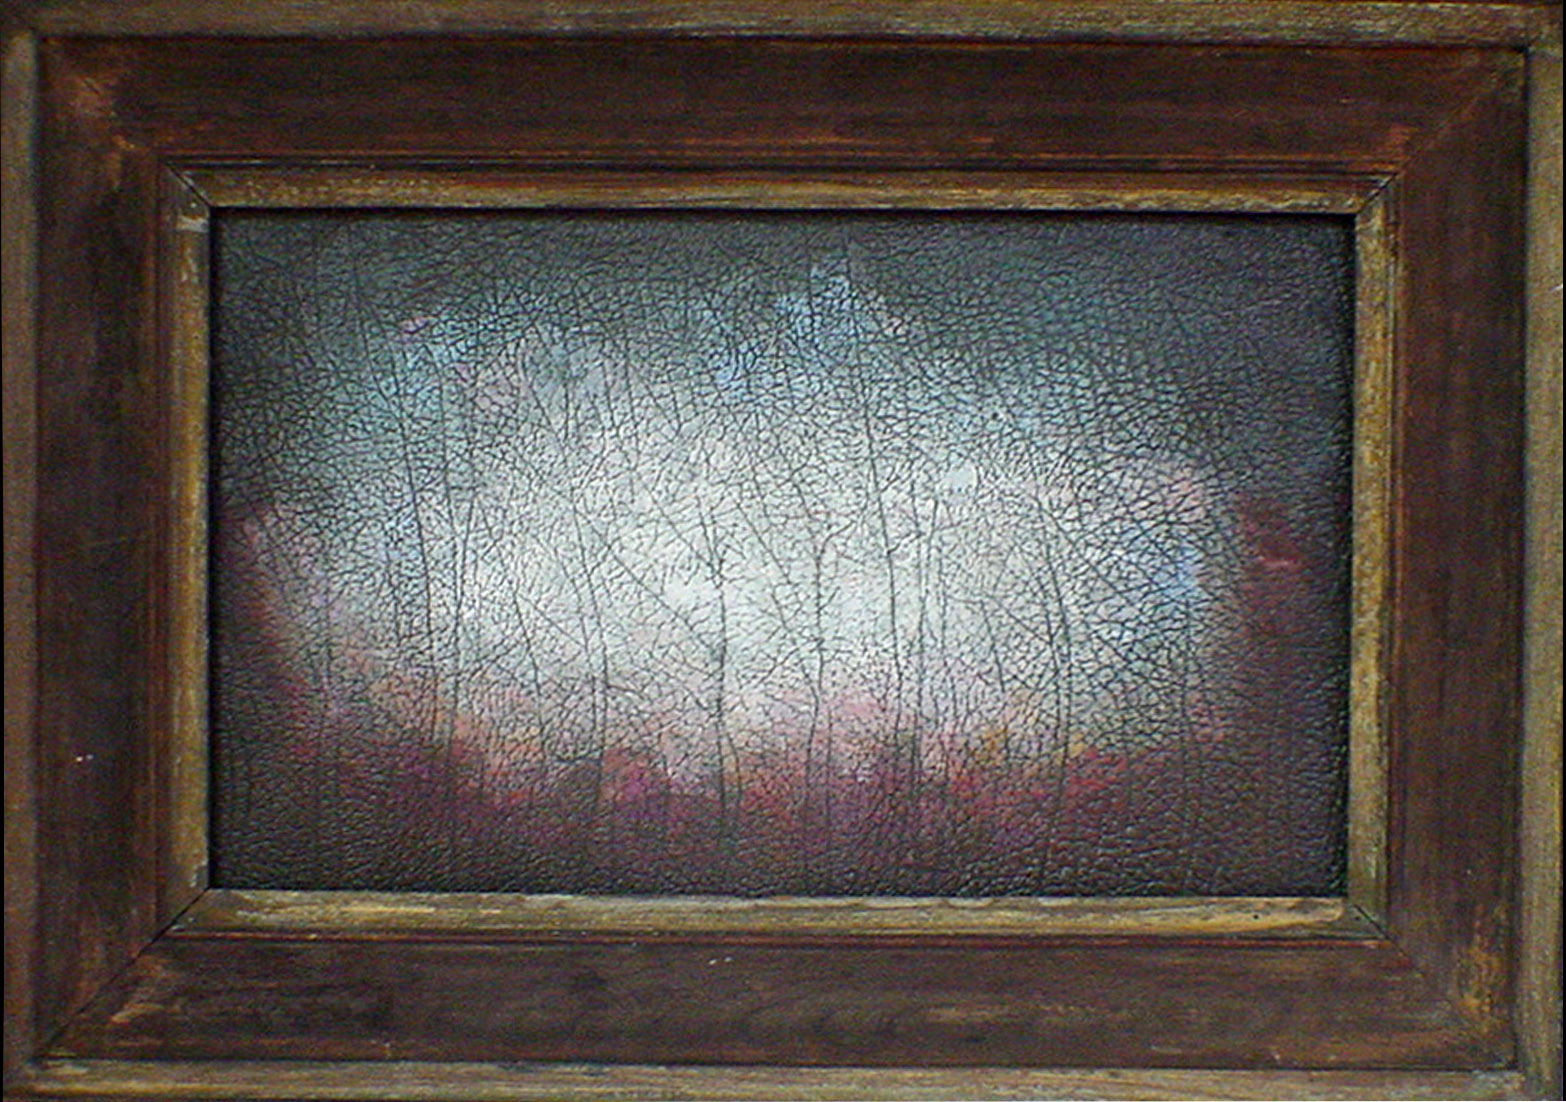 Treeline, Oil on Leather, 18x30 in, Robert Hite, 2008, sold